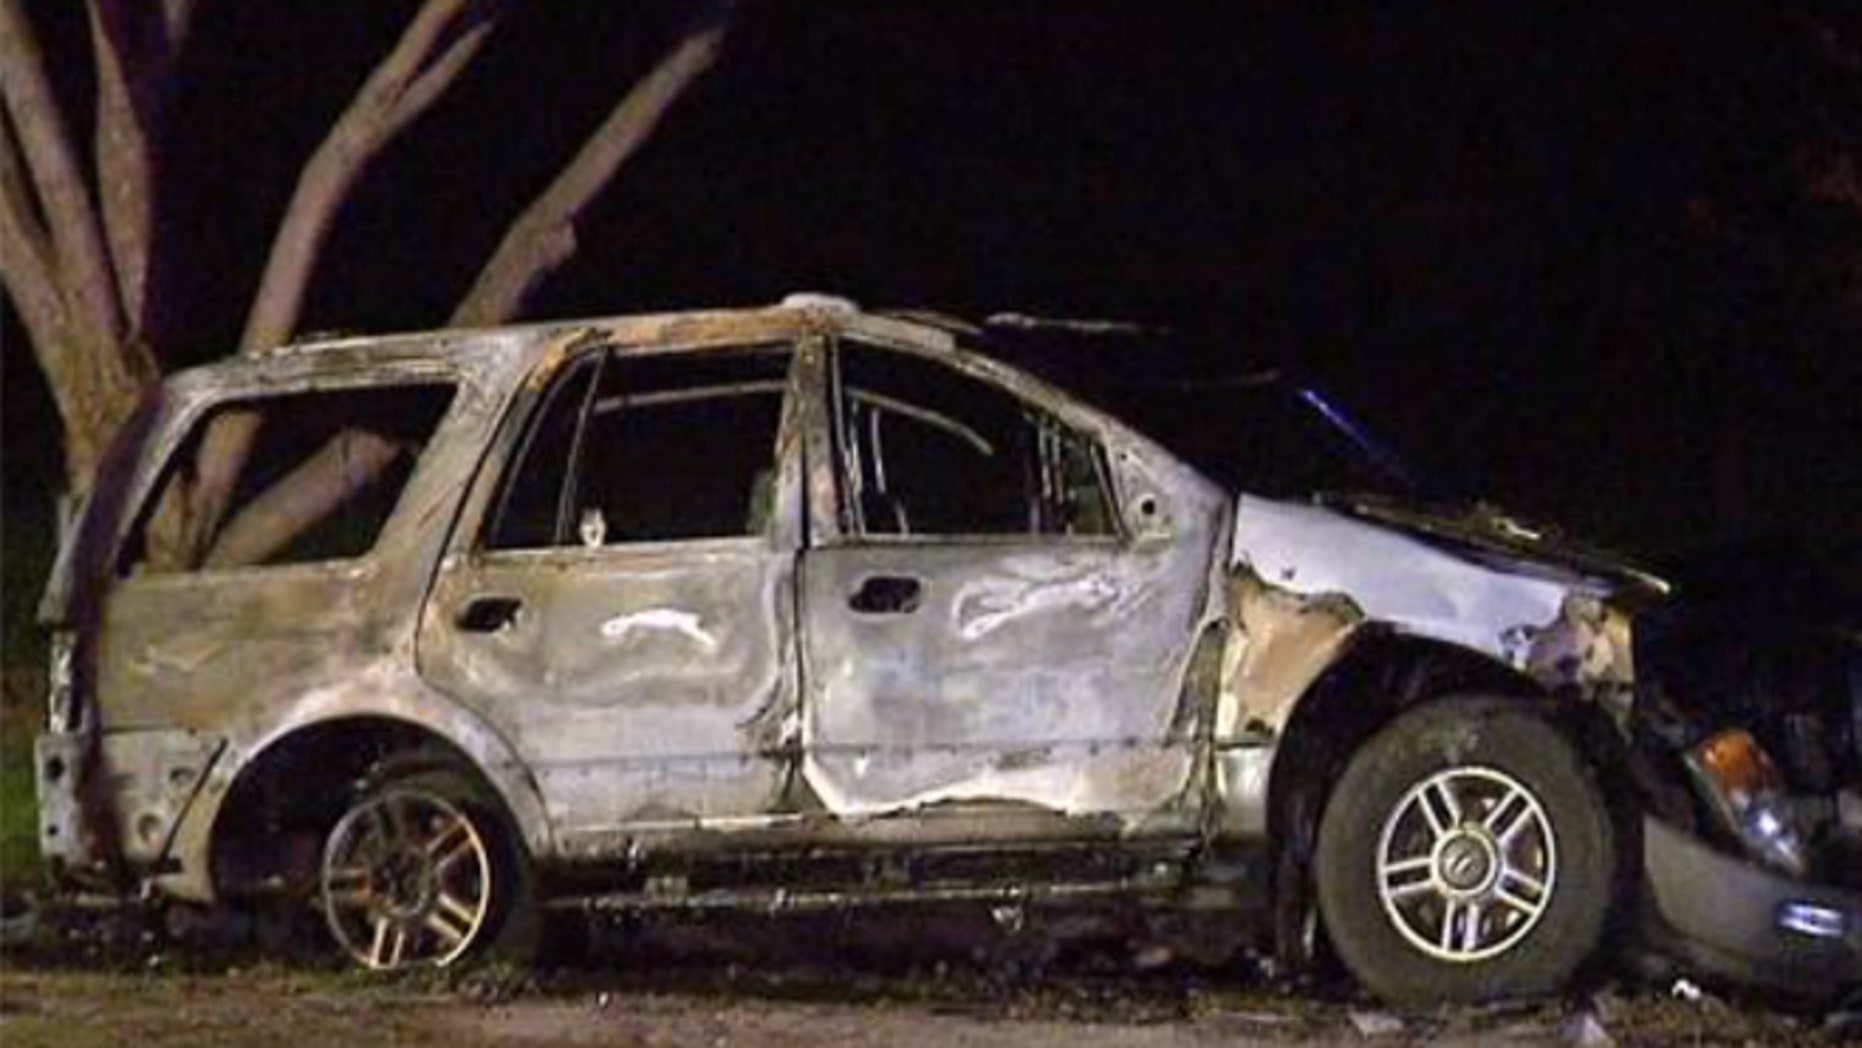 Feb. 16, 2014: Five people, including four children, were killed in a fiery car accident in Fresno, Calif.